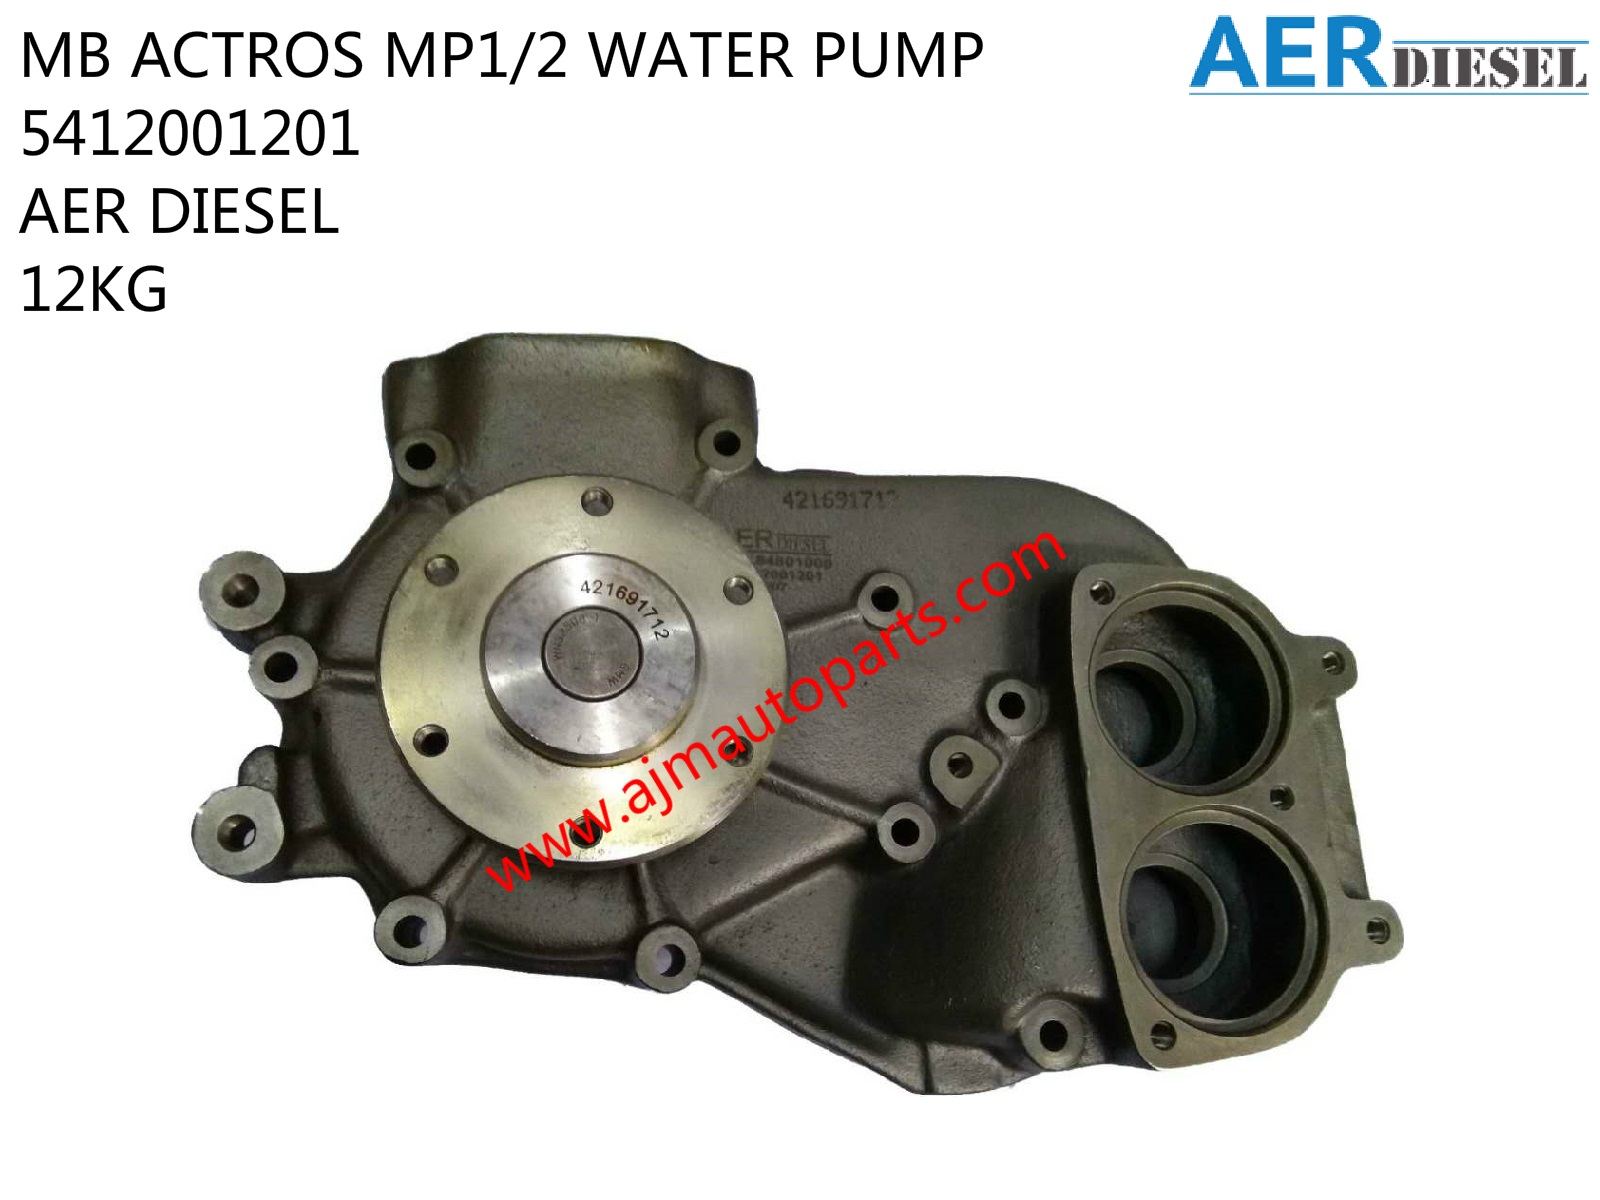 MB ACTROS MP1-2 WATER PUMP-5412001201